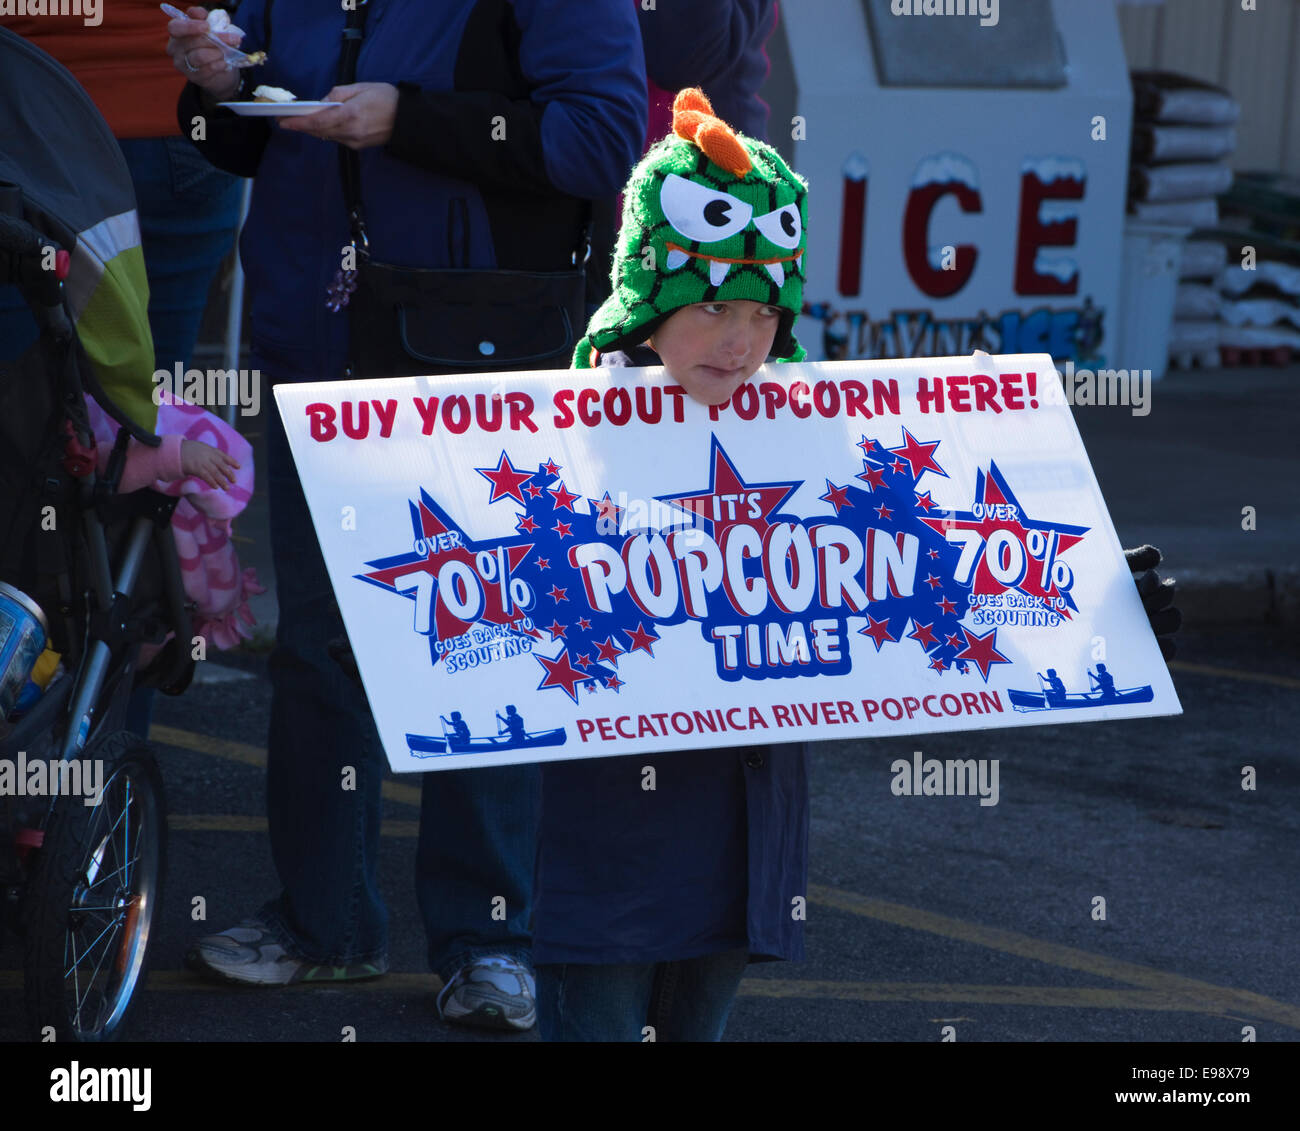 Boy scout selling popcorn at  autumn street fair - Stock Image